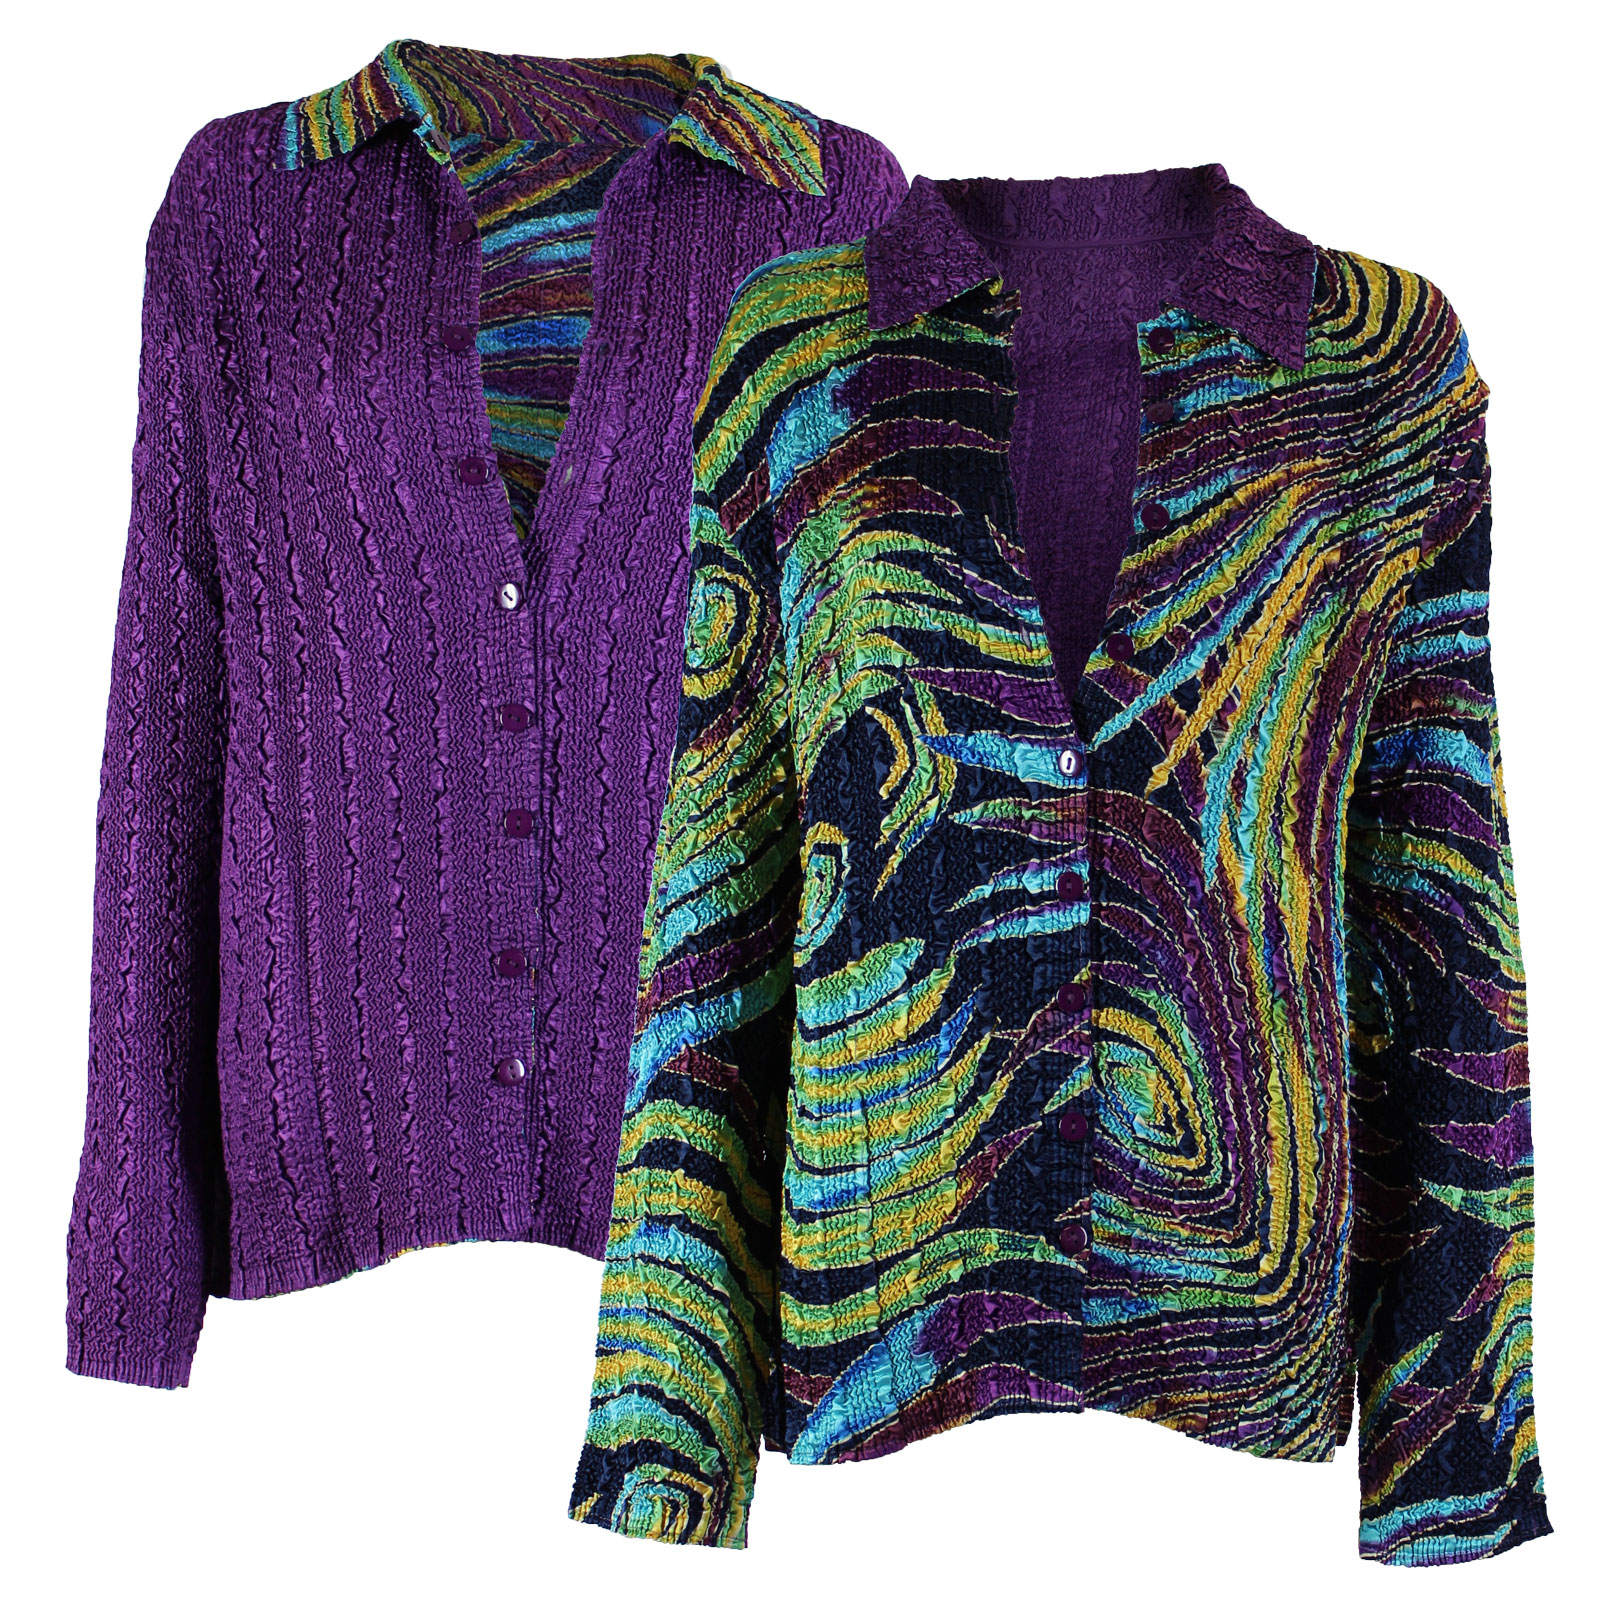 Wholesale Magic Crush - Reversible Jackets Psychedelic Swirl reverses to Solid Purple - 1X-2X